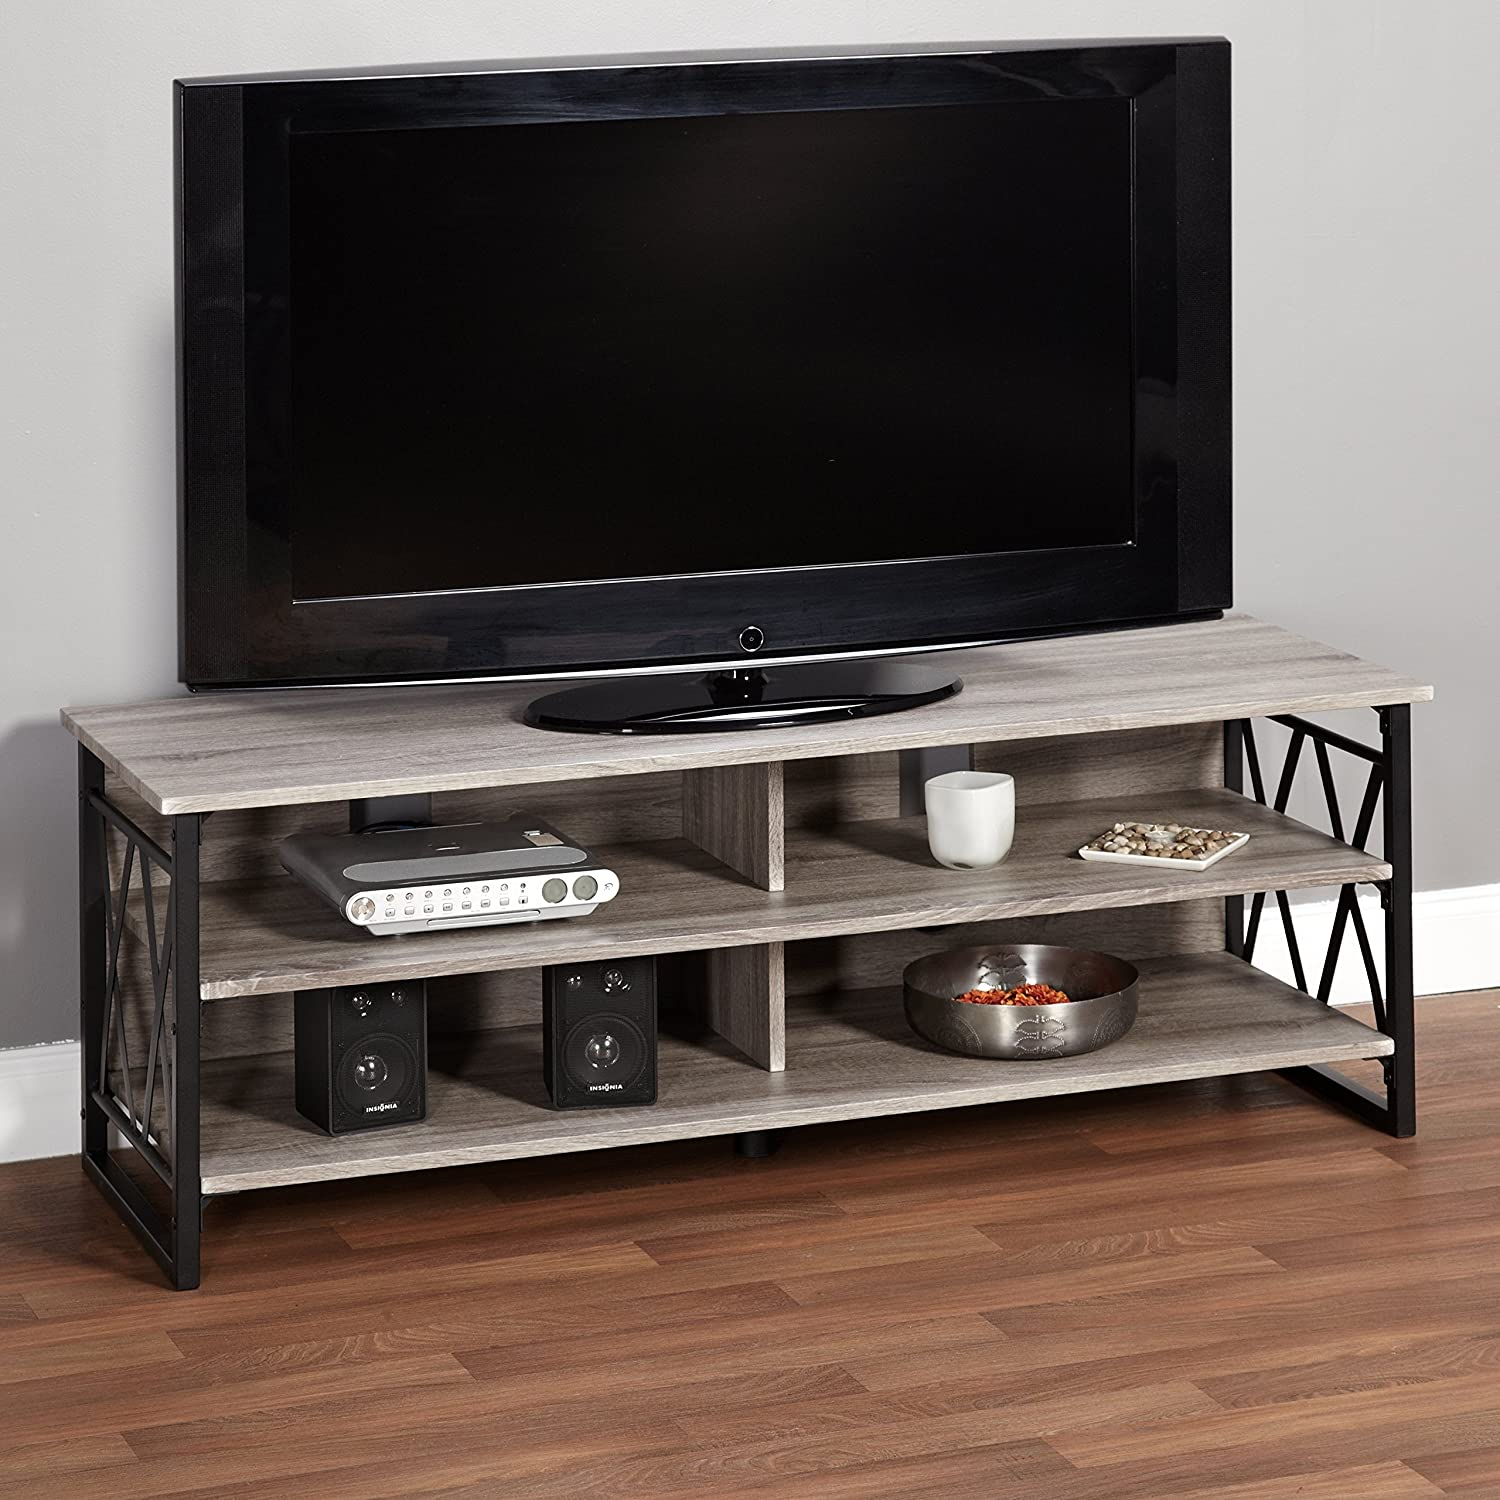 Amazon Com Metro Shop Seneca Xx 60 Inch Black Grey Rustic Tv Stand